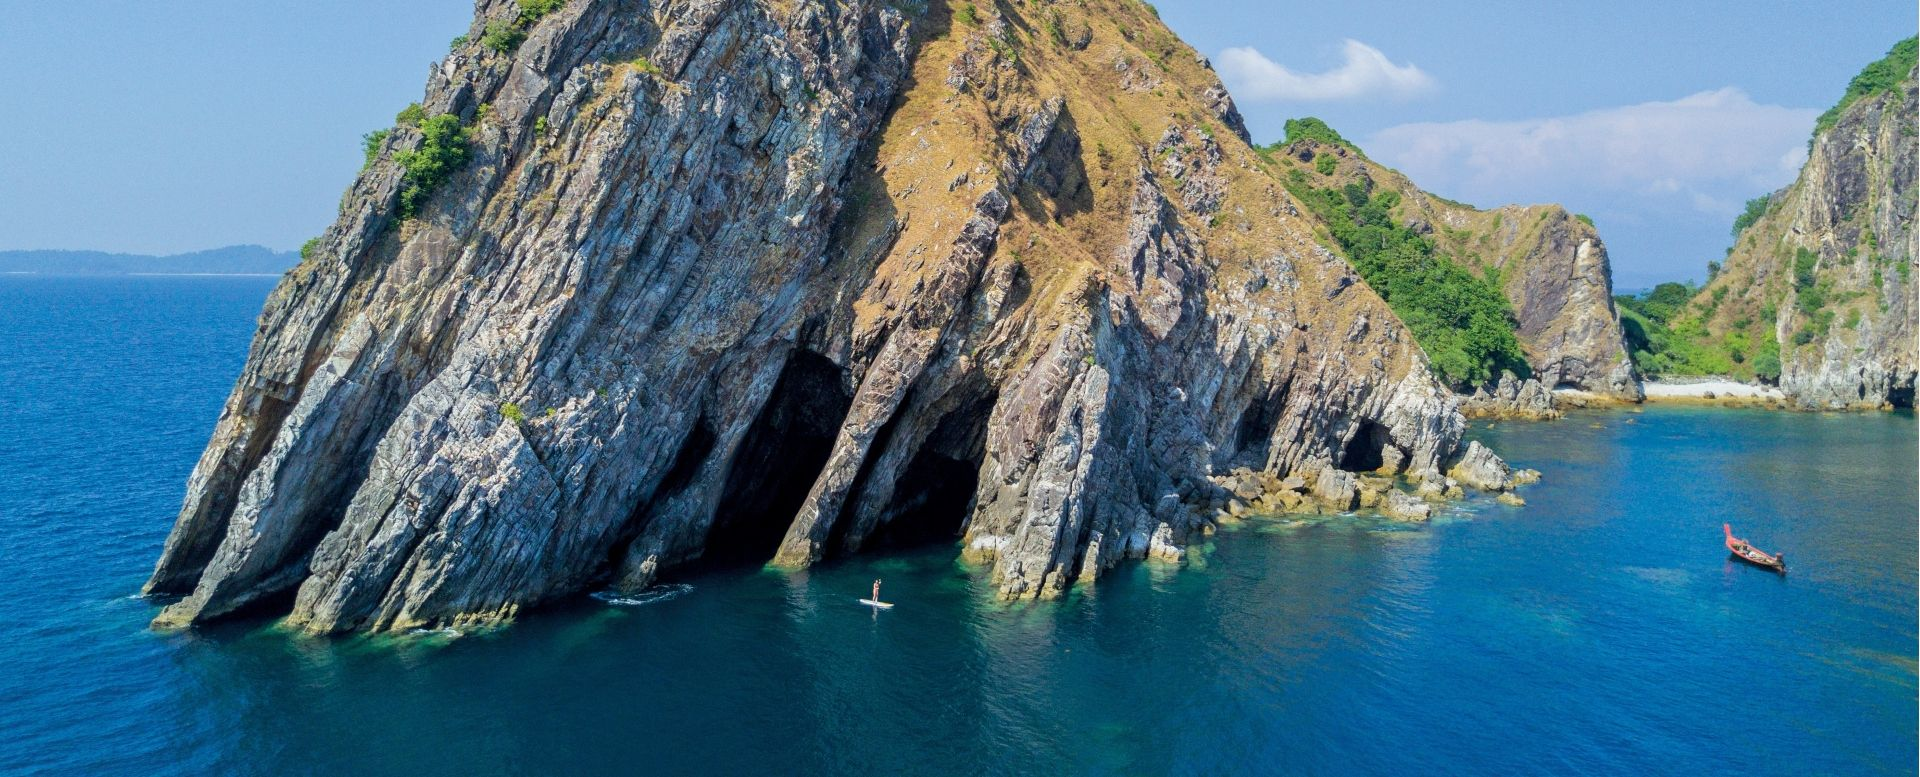 Explore the surrounding islands, beaches and caves